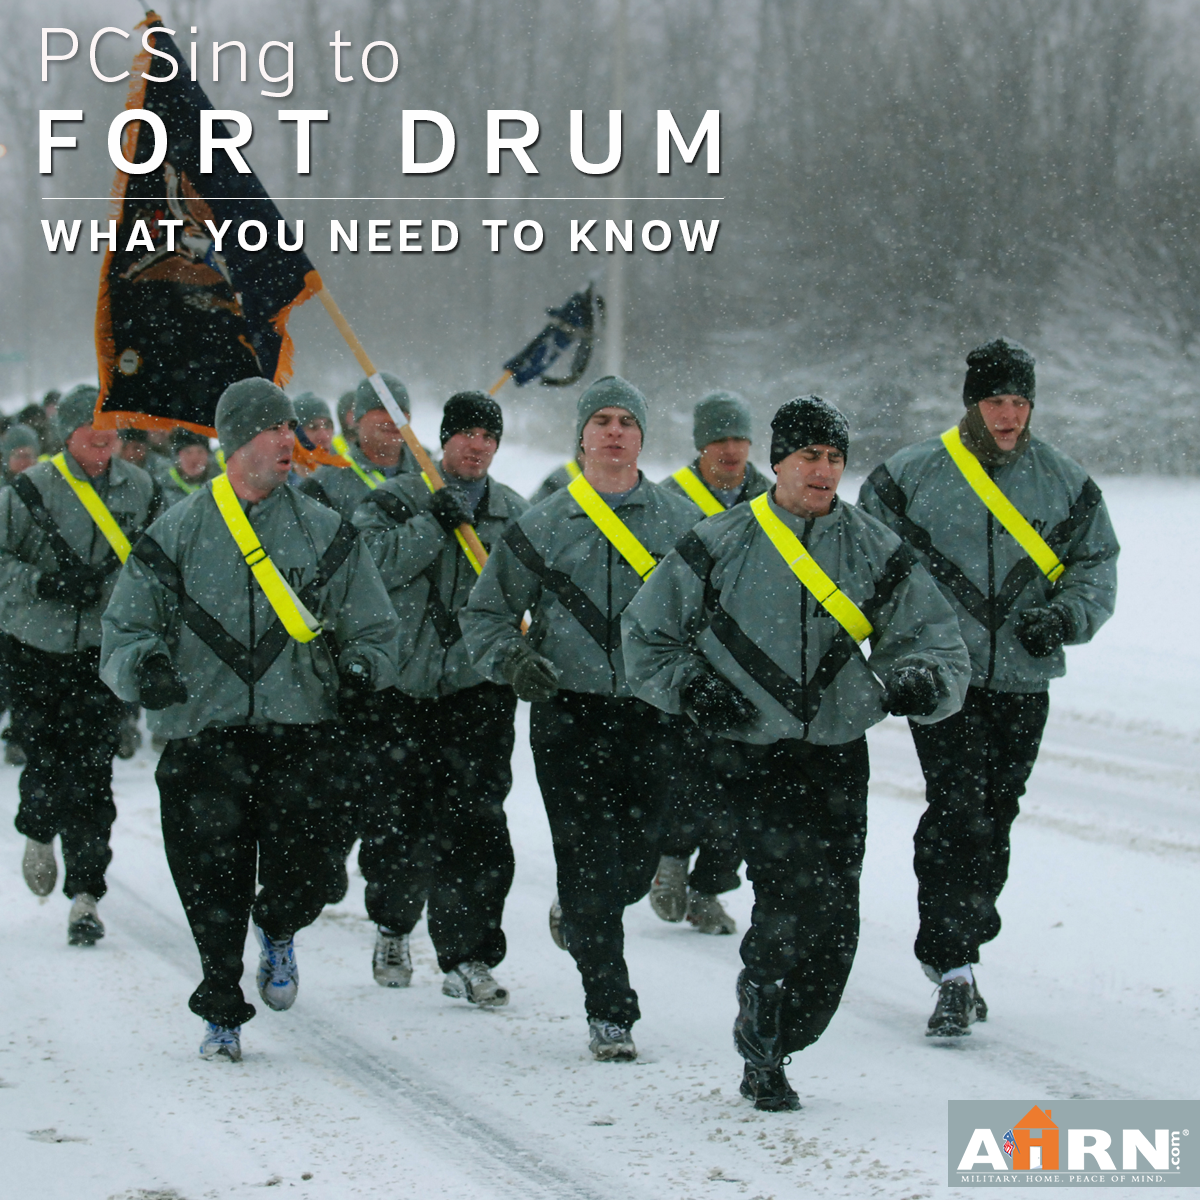 Help Finding A Place To Rent: Moving To Fort Drum - Your PCSing Guide